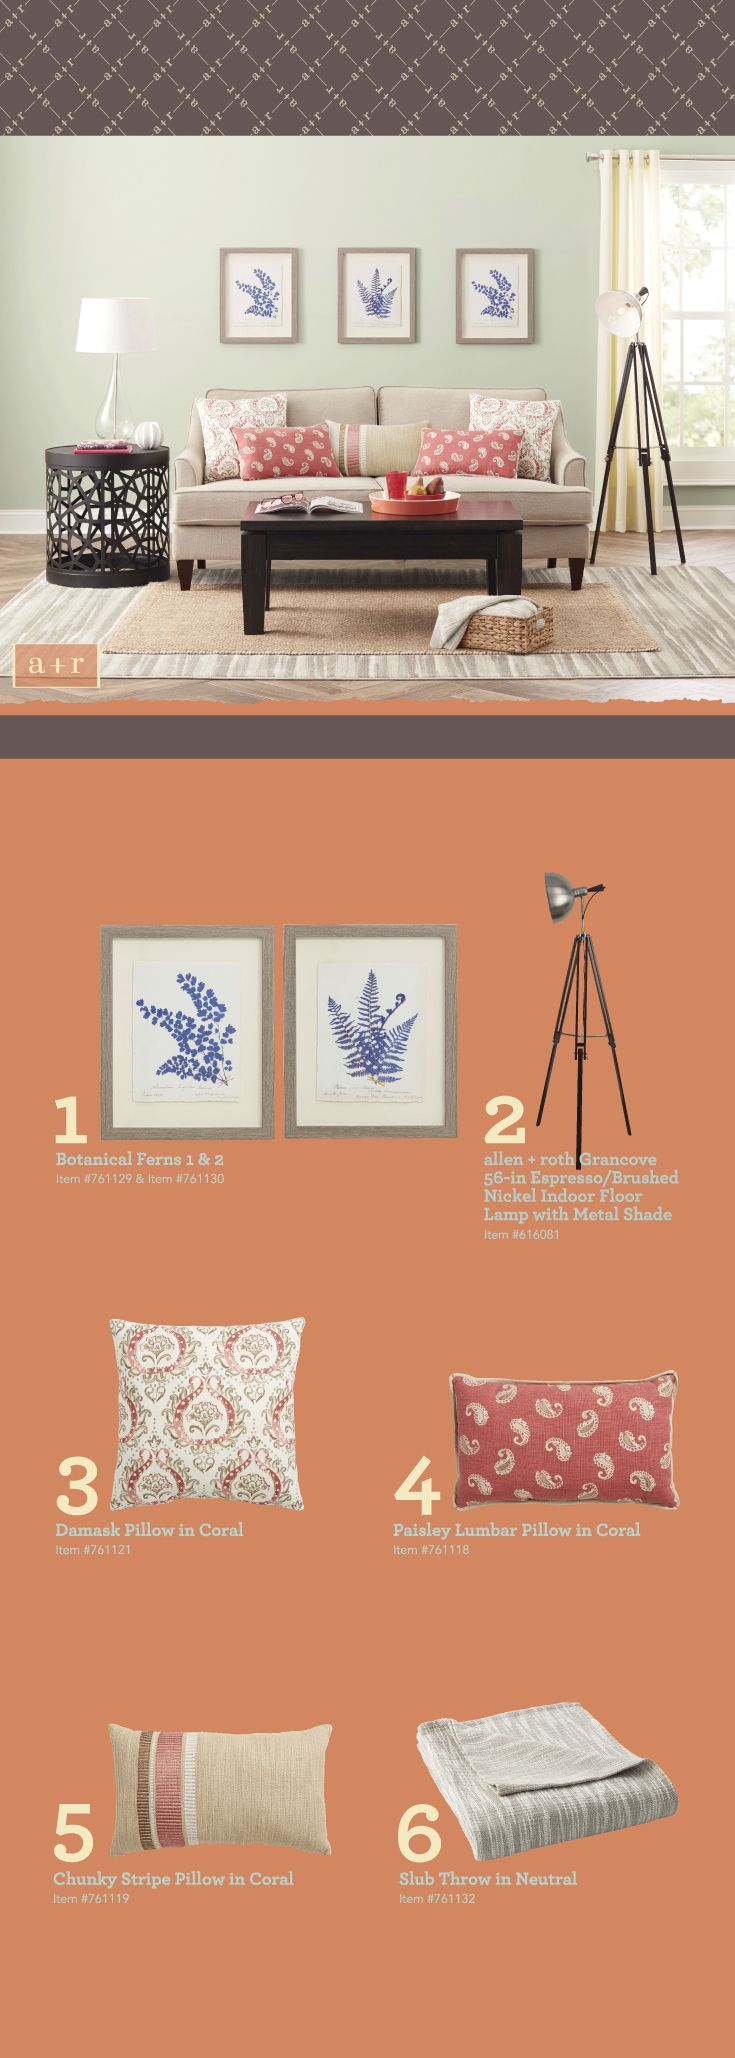 Pull Together The Home D Cor Trends You Love For A Look That S Magazine Worthy Yet Easy Allen Rotheasy